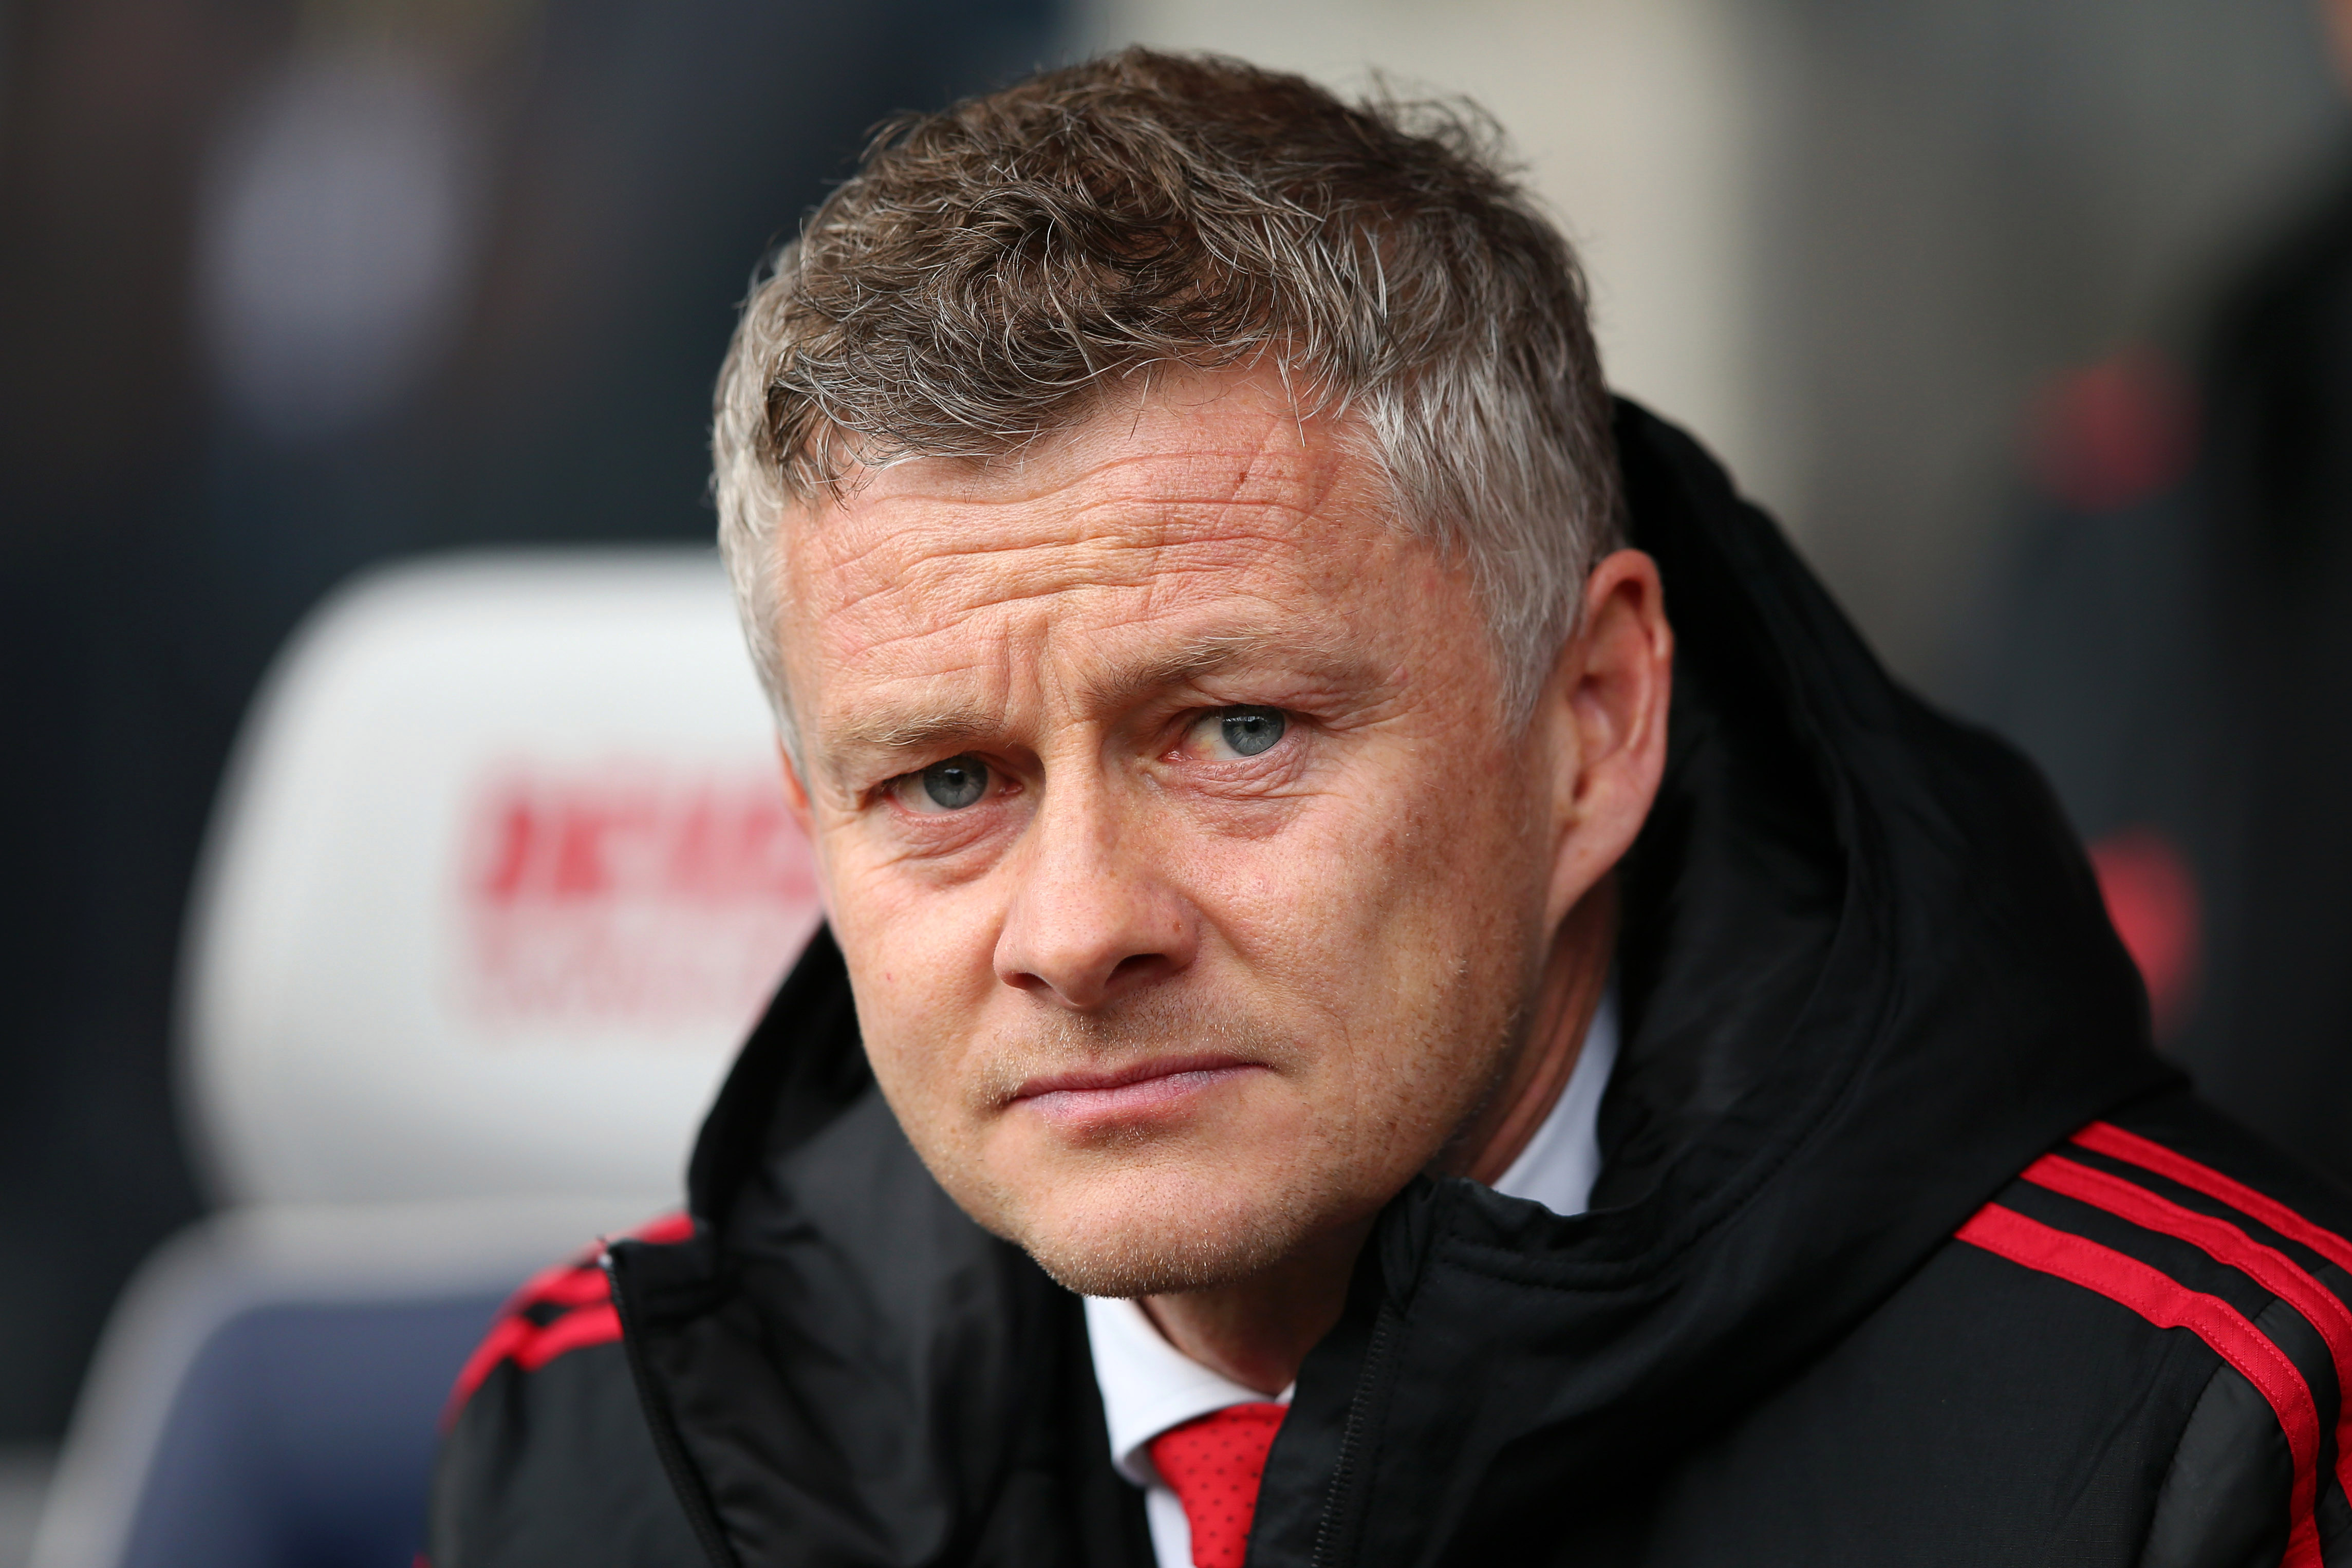 Solskjaer has a major rebuilding job on his hands at Manchester United